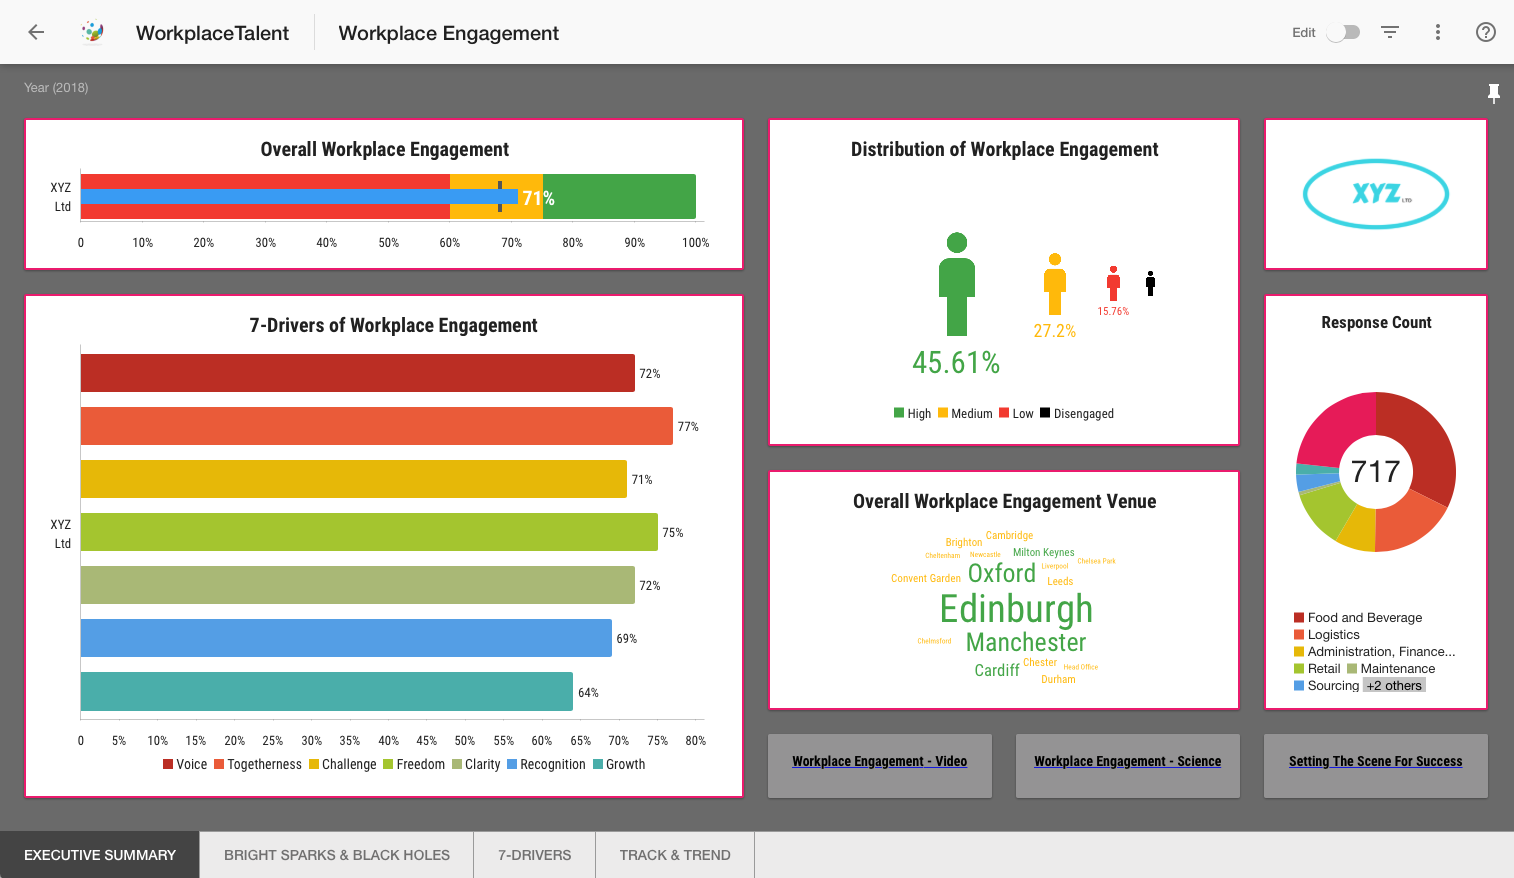 Custom Branded Reporting - Here is an example of custom branded survey reporting dashboard created for one of our clients.